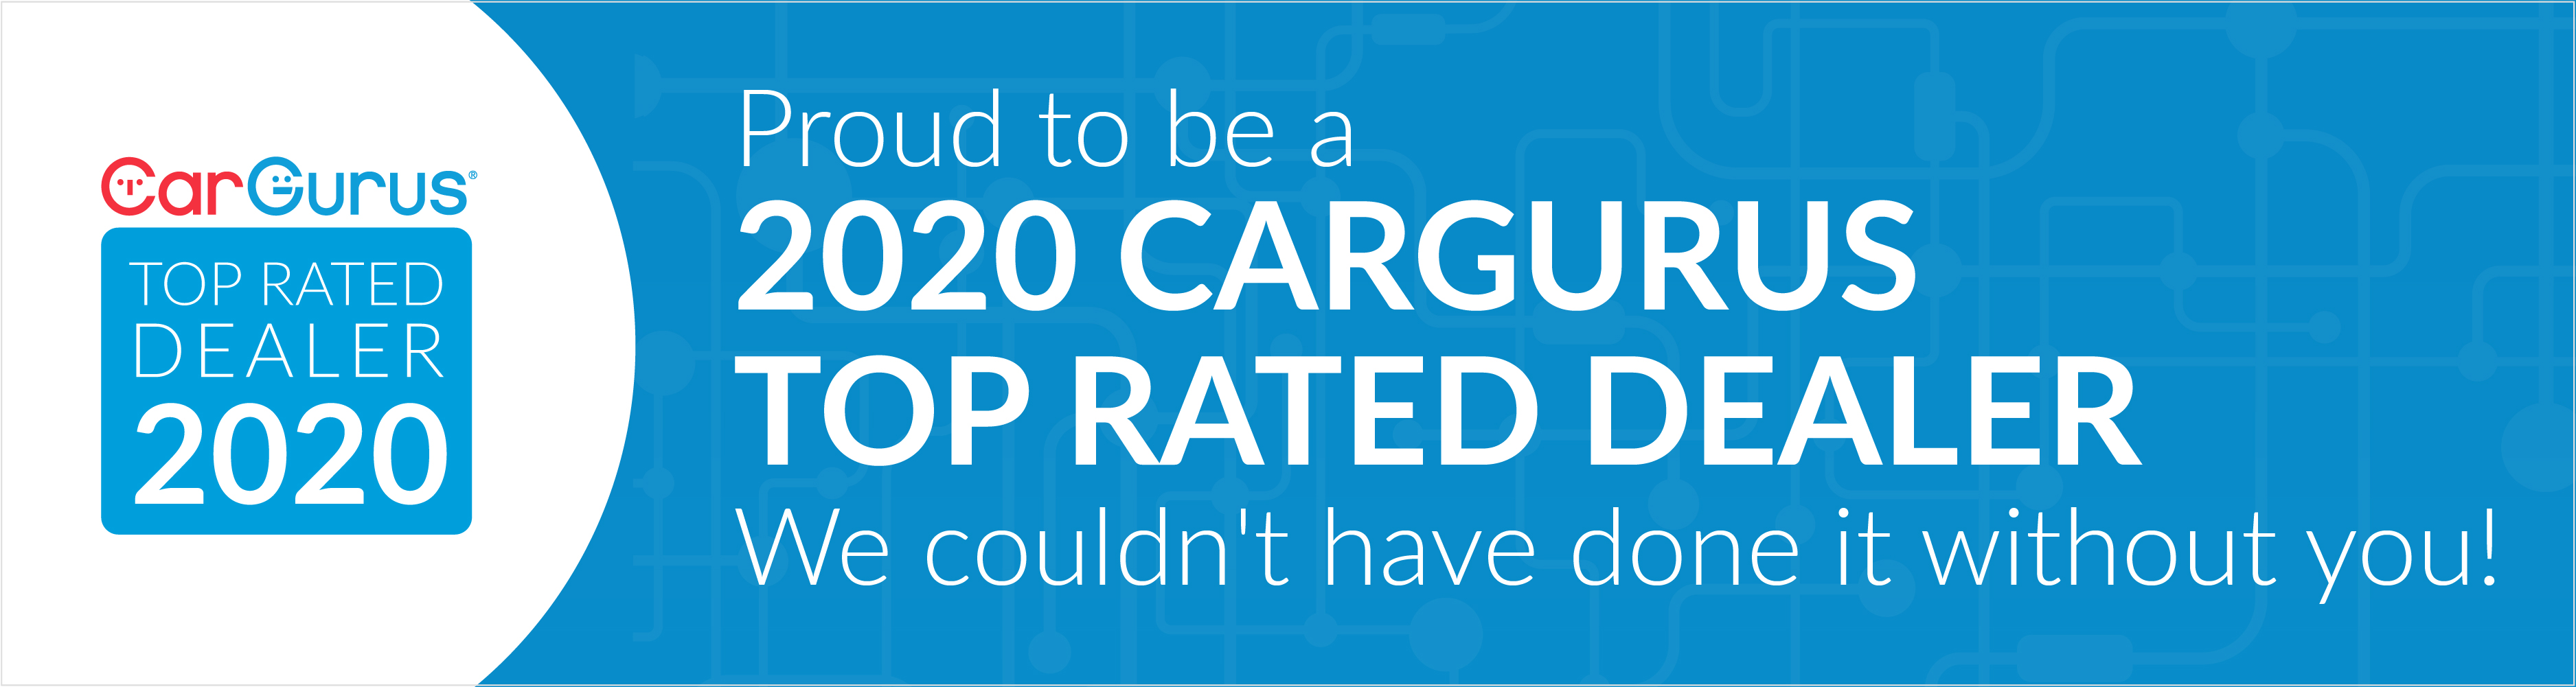 CarGurus Top Rates Dealer 2020